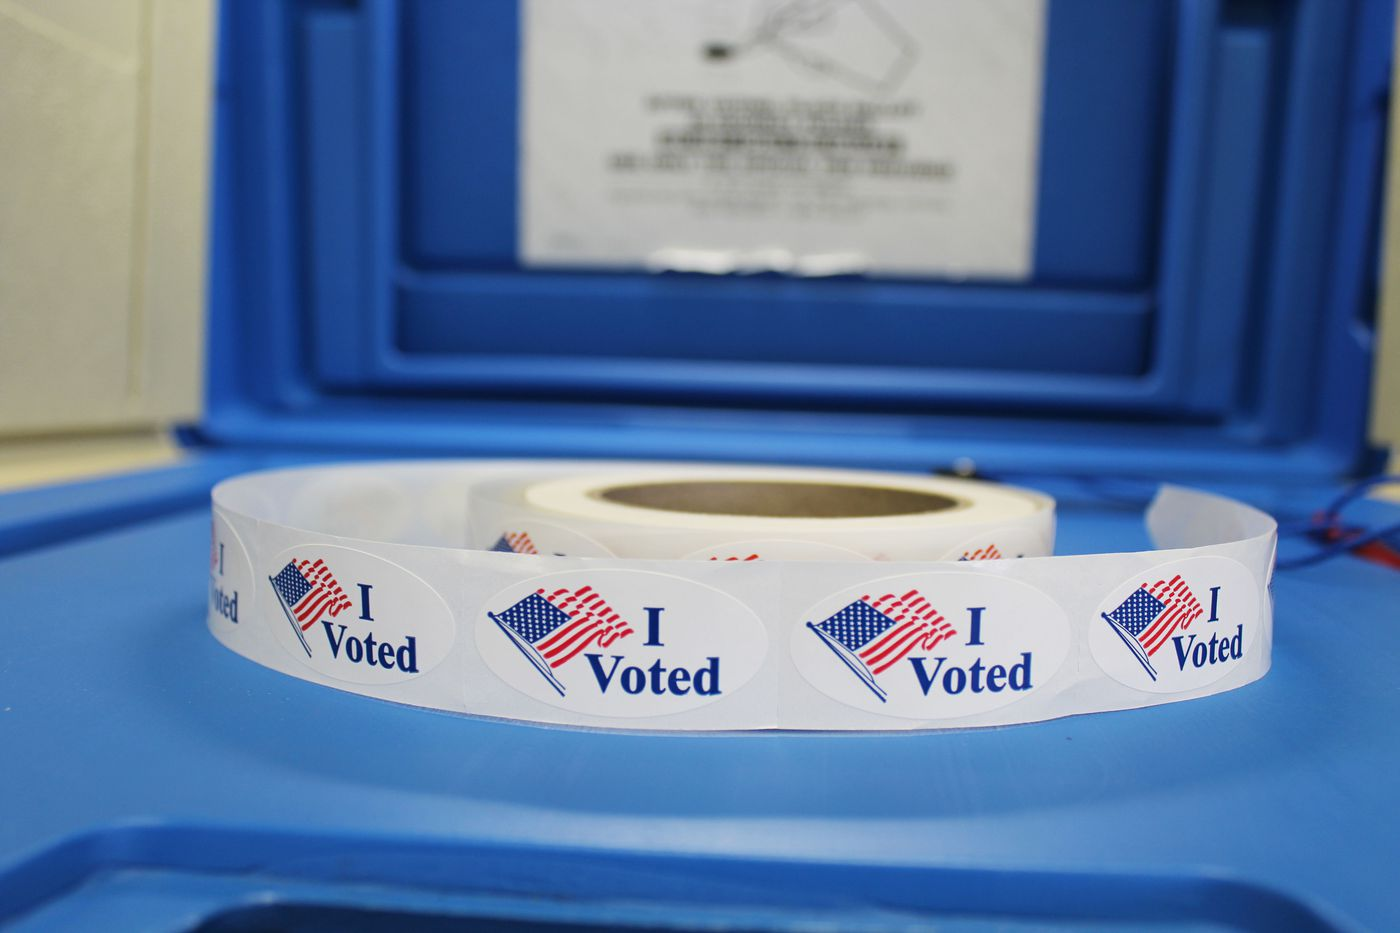 Voting in Massachusetts: What to know for the midterm elections